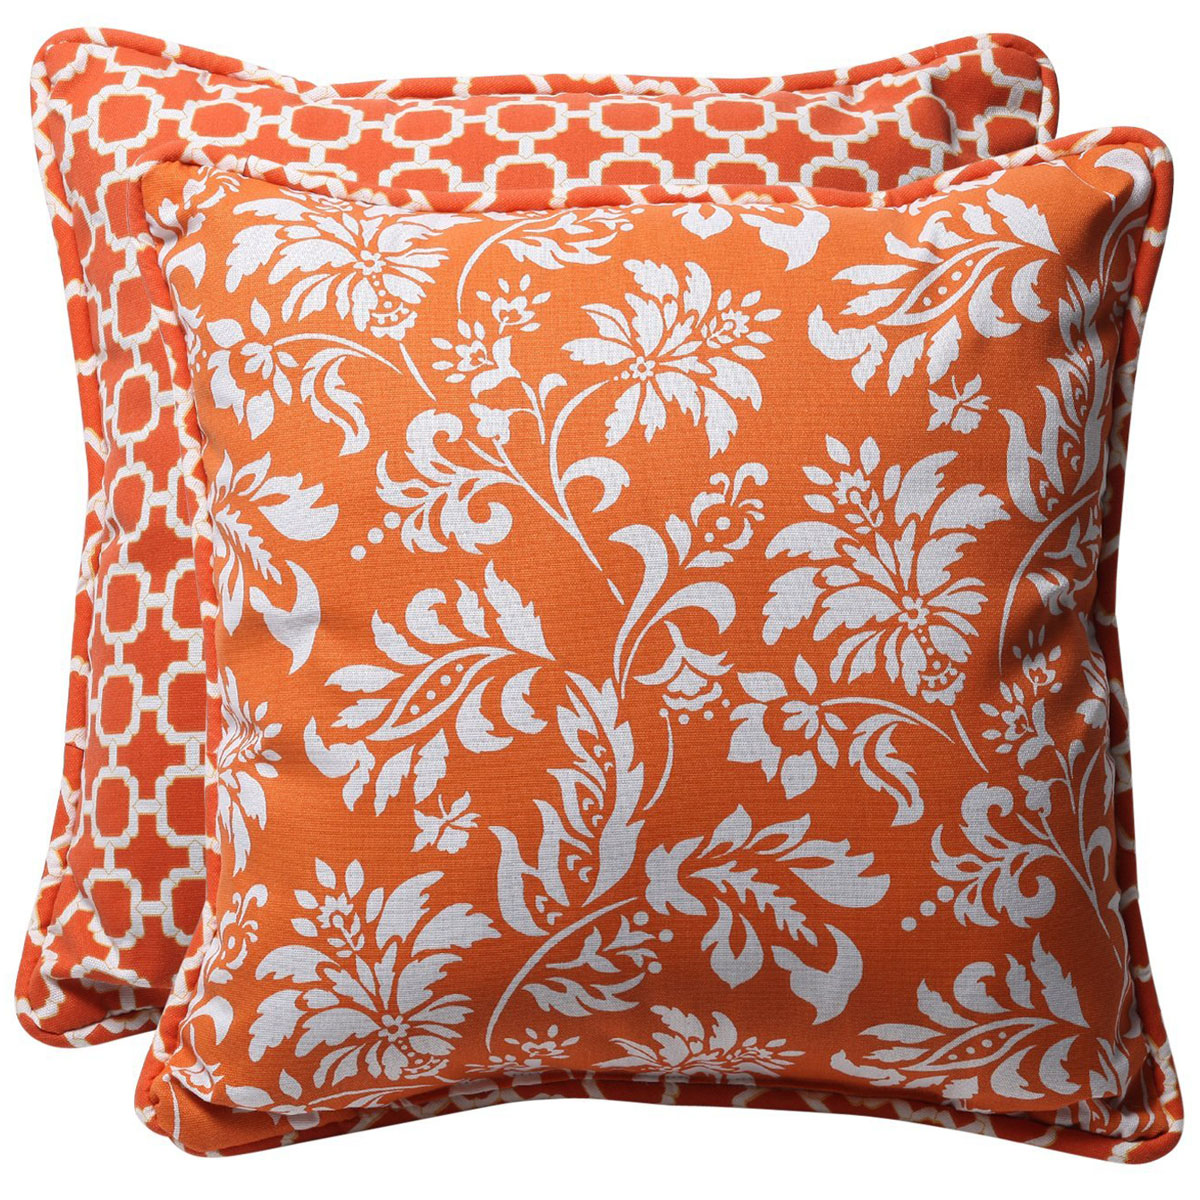 Throw Pillow Synonym : Image Gallery throw pillows